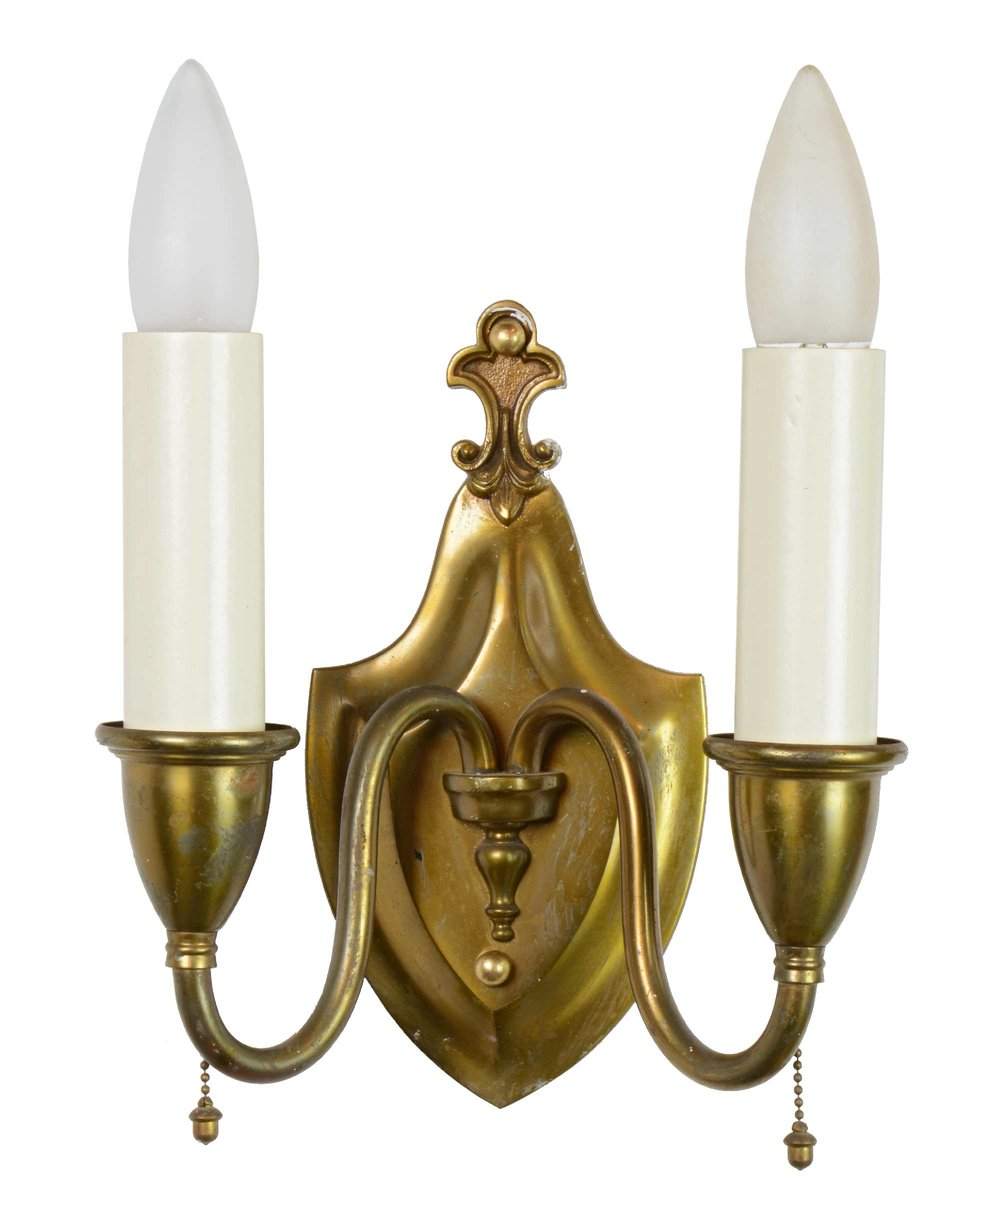 cast brass sconce with fleur-de-lis